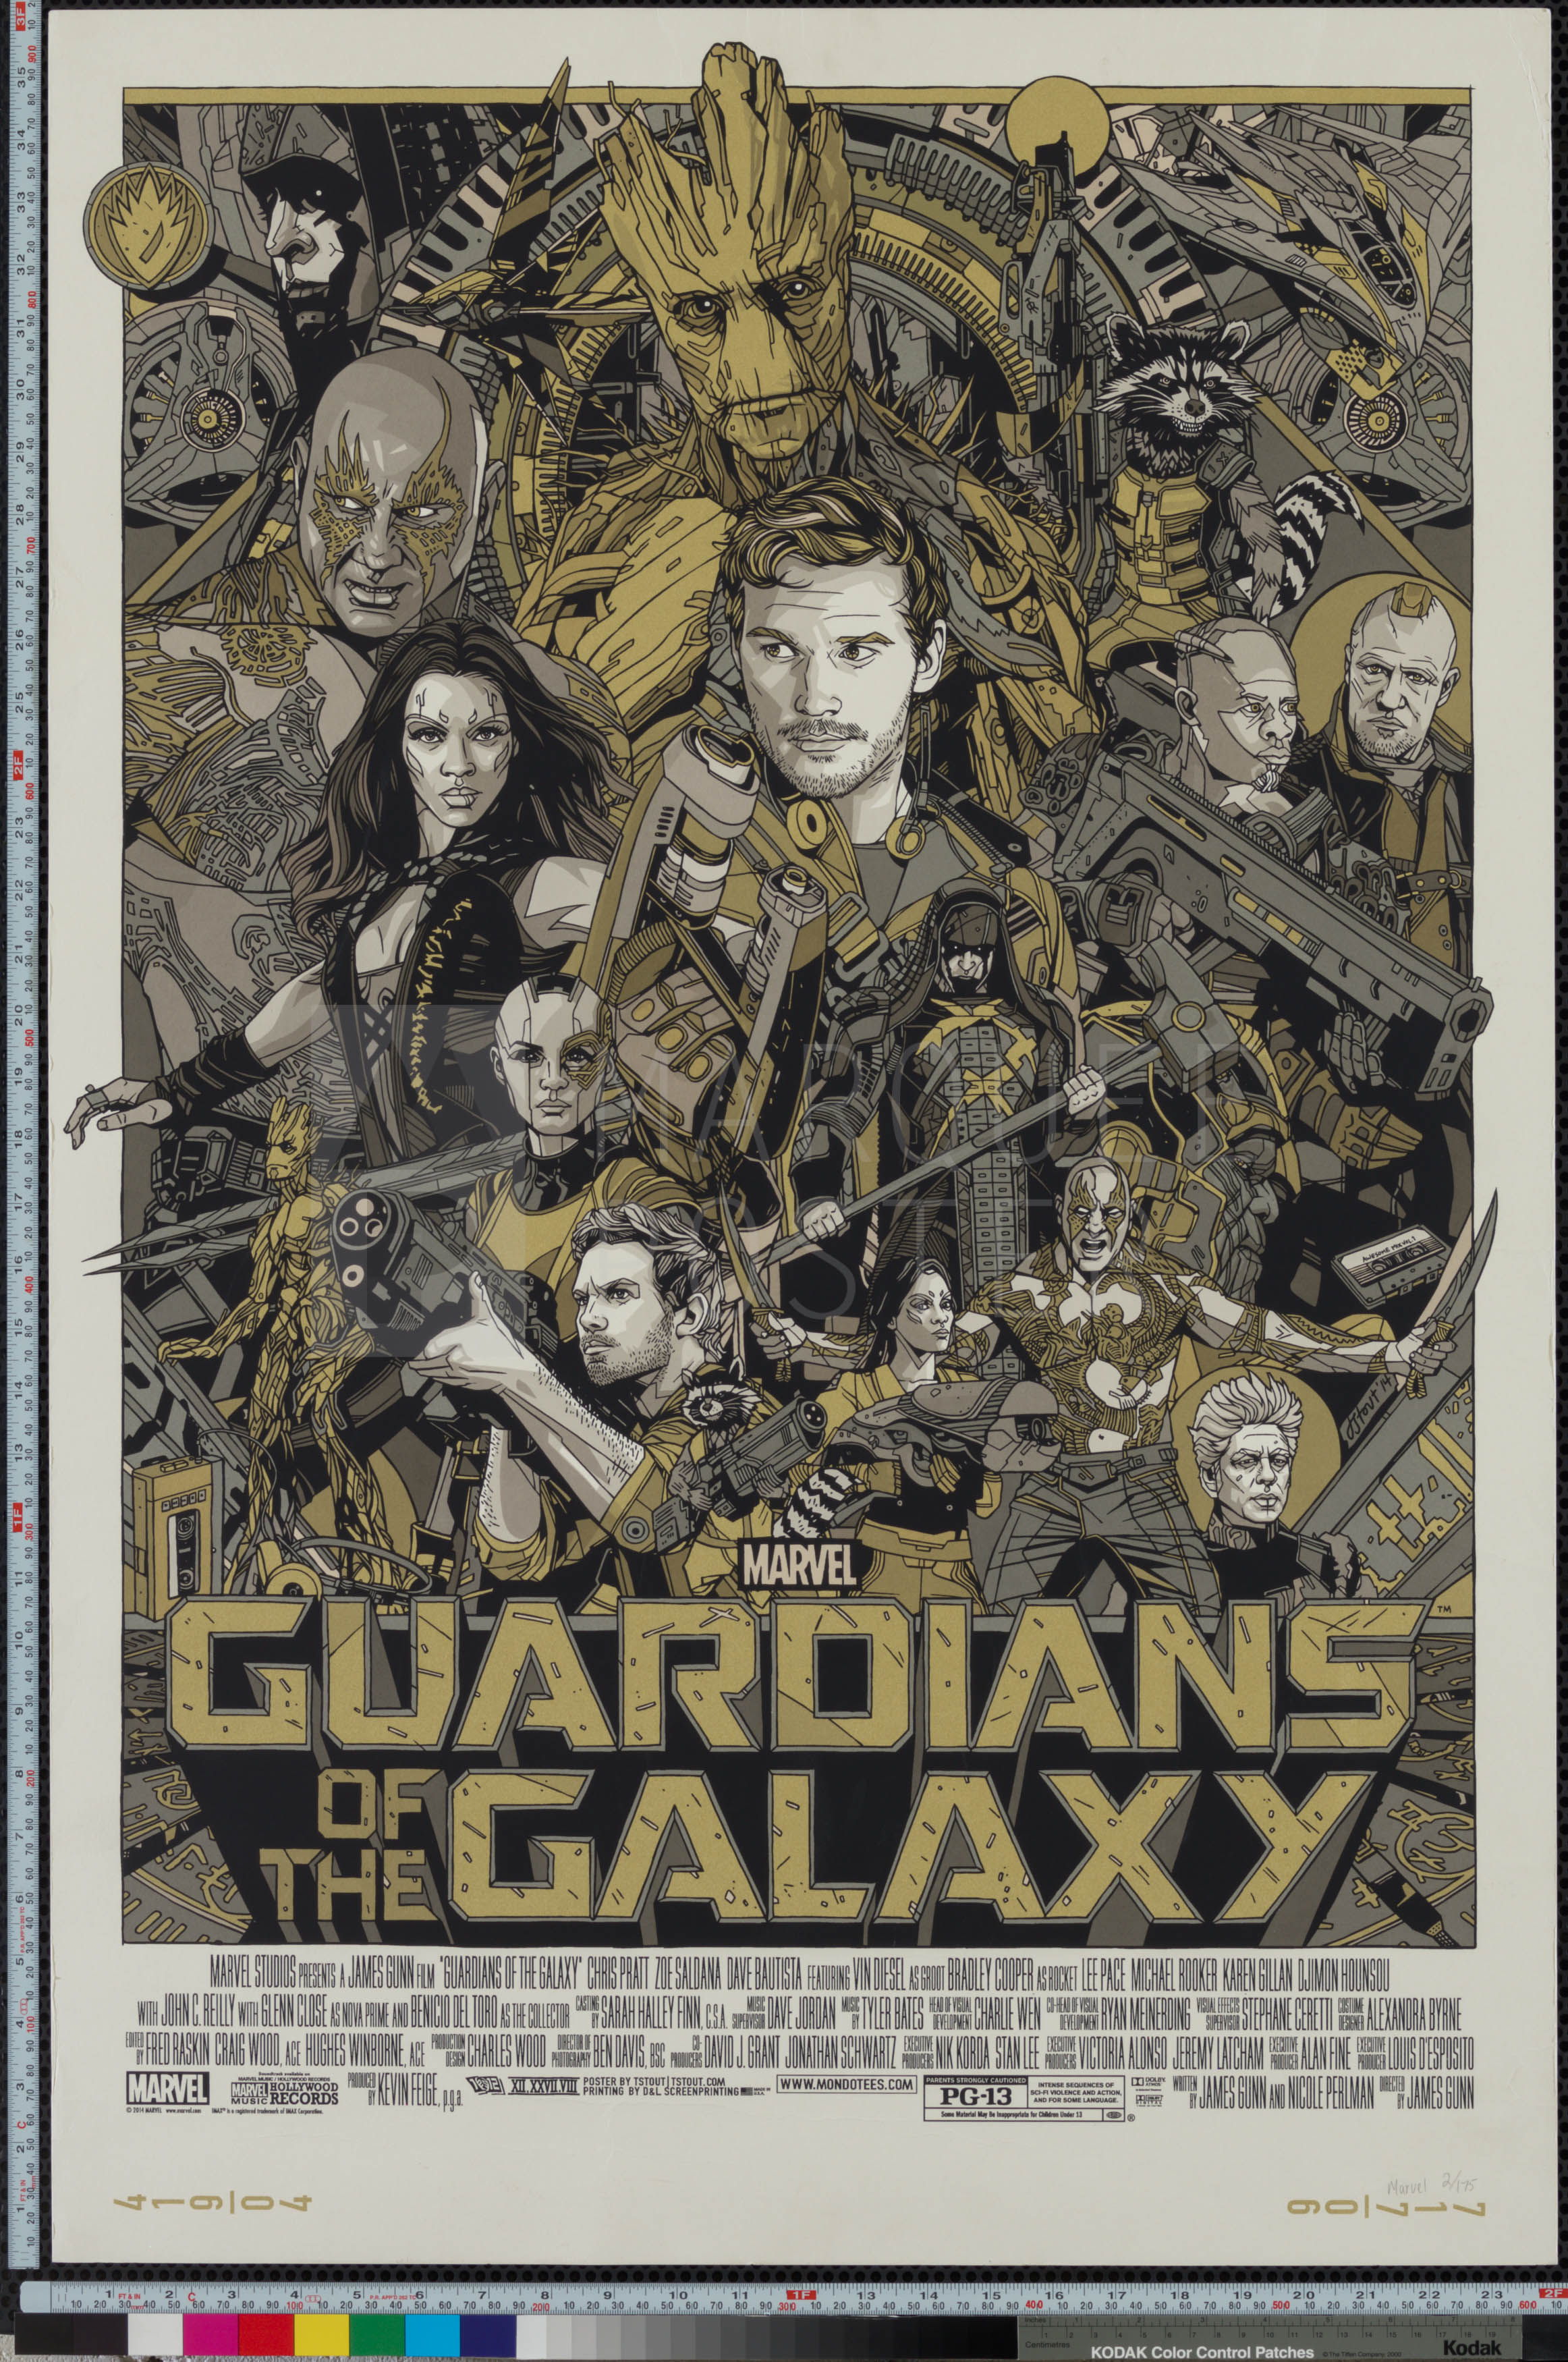 51-guardians-of-the-galaxy-marvel-cast-crew-gold-variant-art-print-us-arch-d-2014-02-7